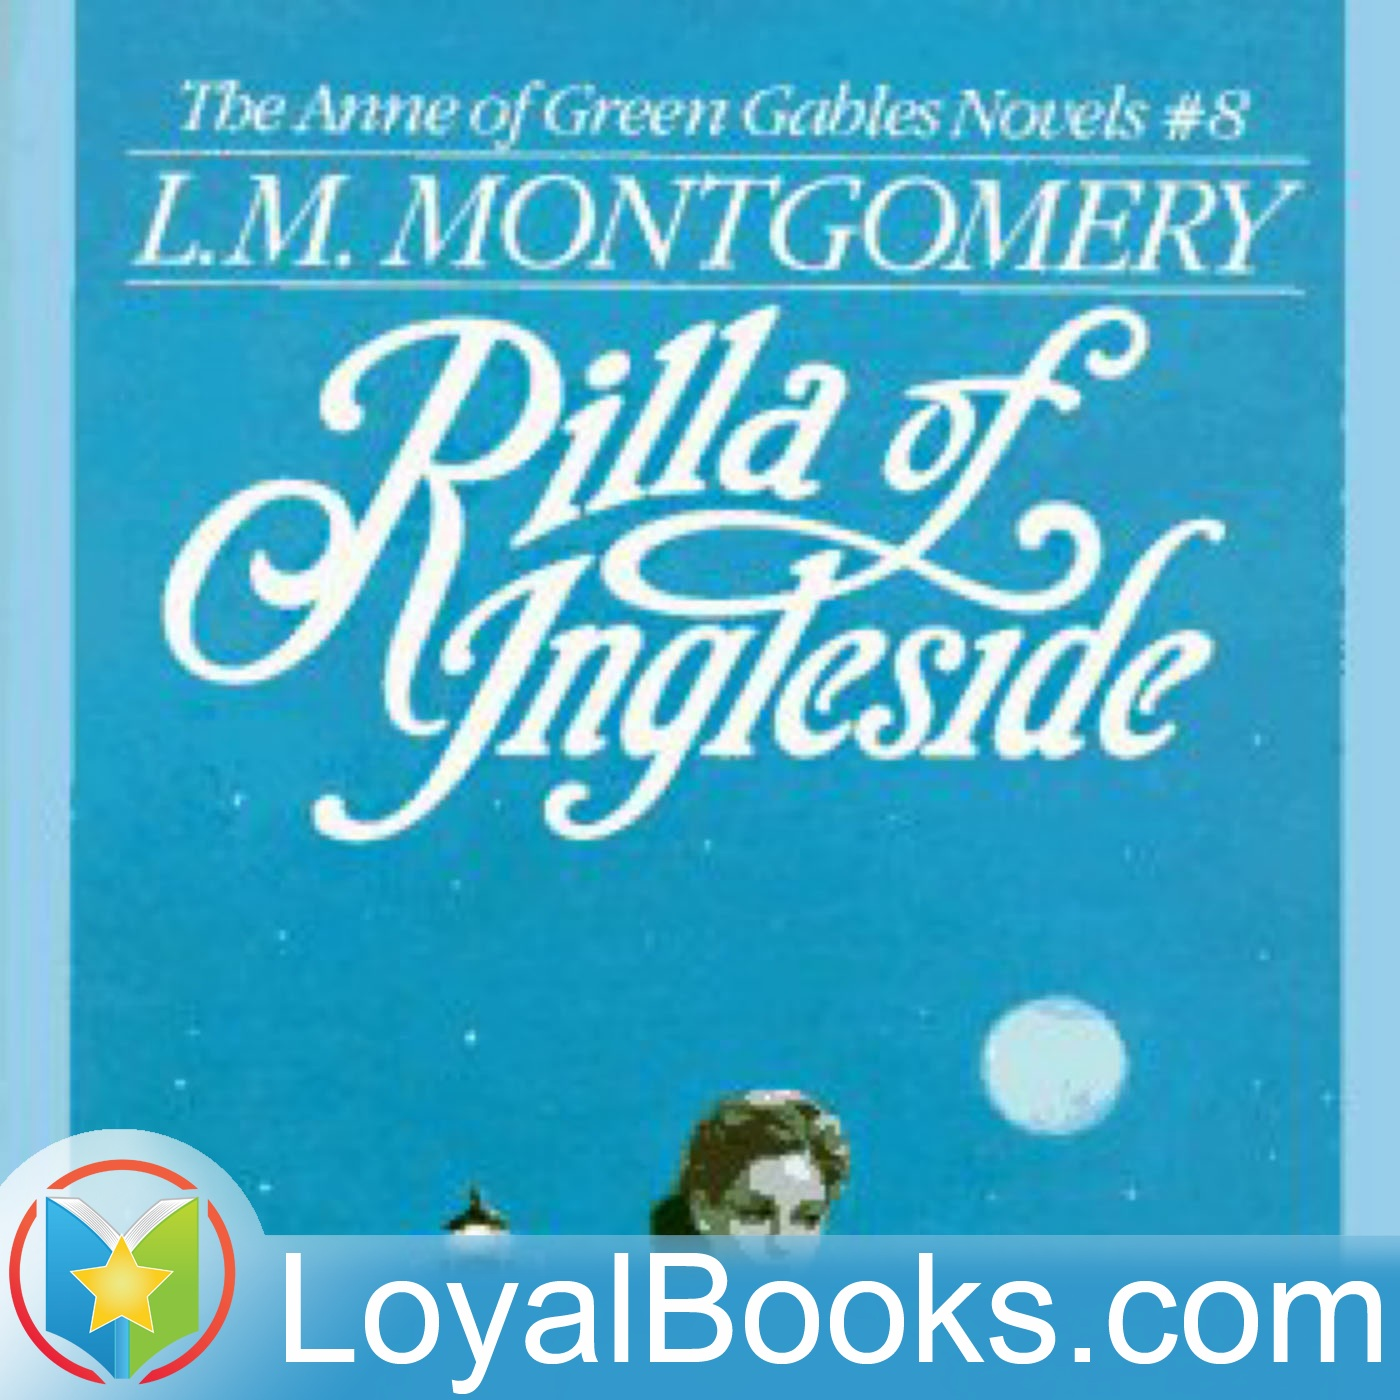 <![CDATA[Rilla of Ingleside by Lucy Maud Montgomery]]>